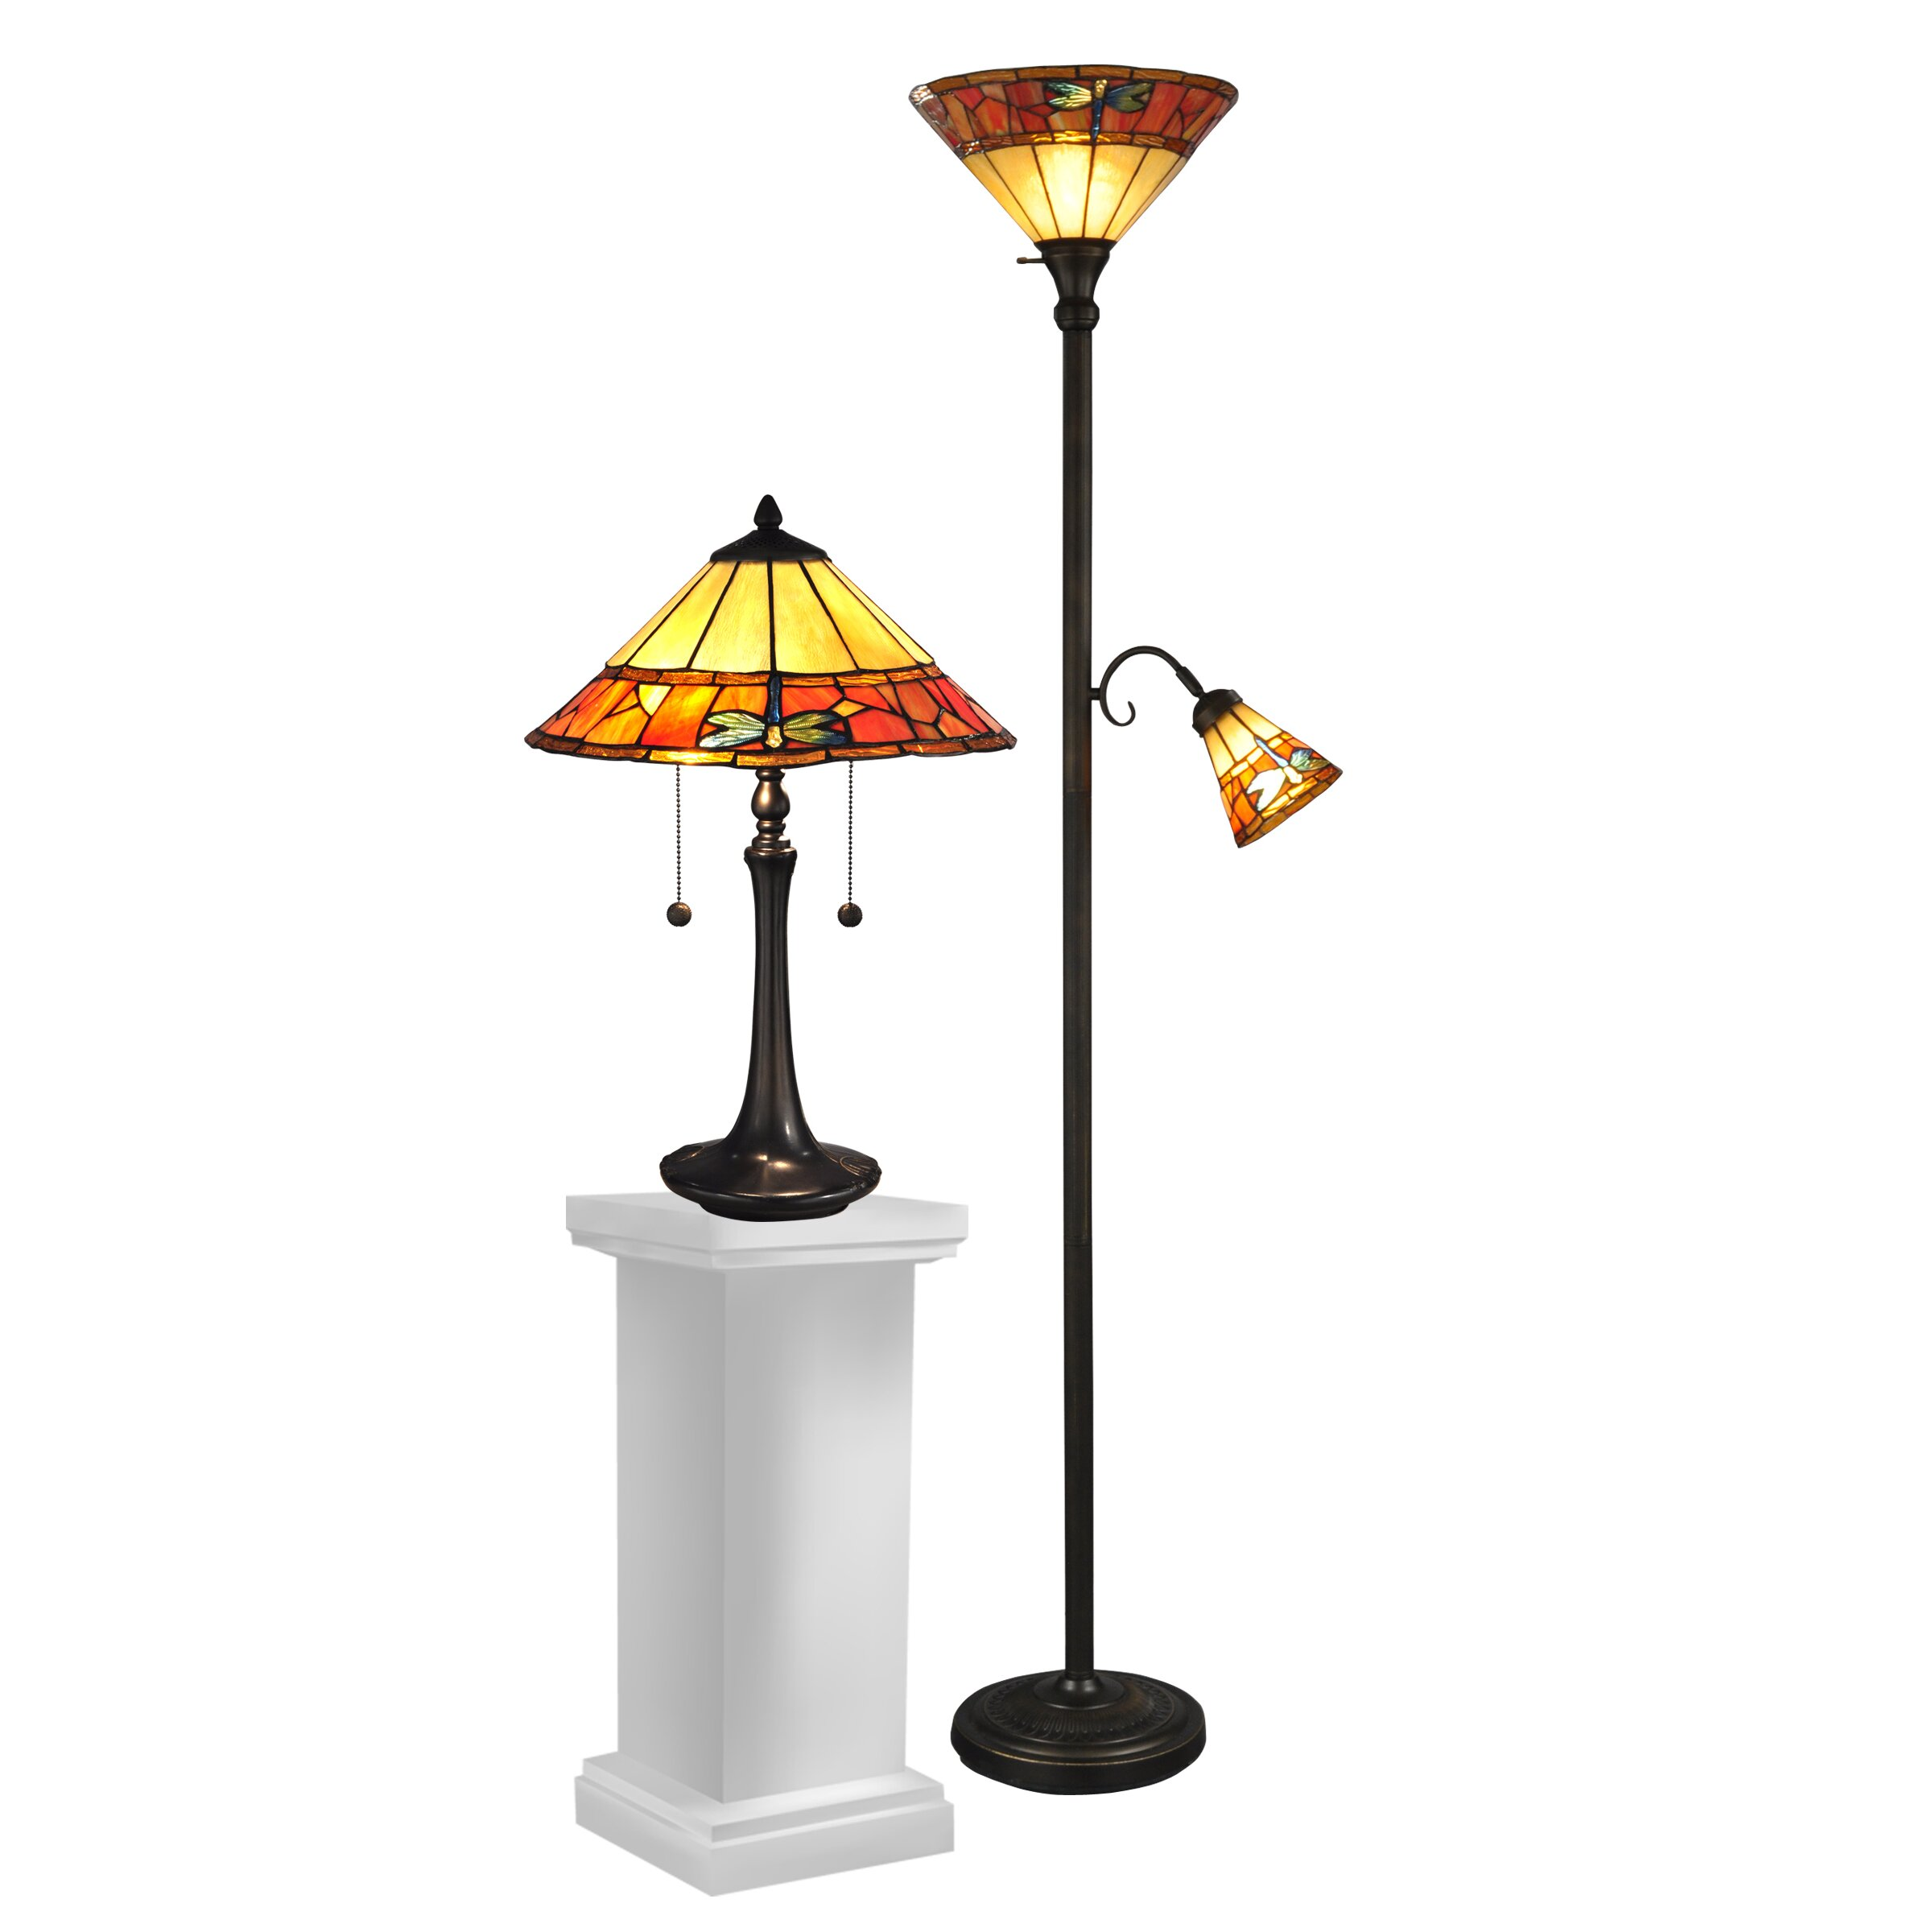 wheeler lamphere 2 piece table and floor lamp set reviews wayfair. Black Bedroom Furniture Sets. Home Design Ideas